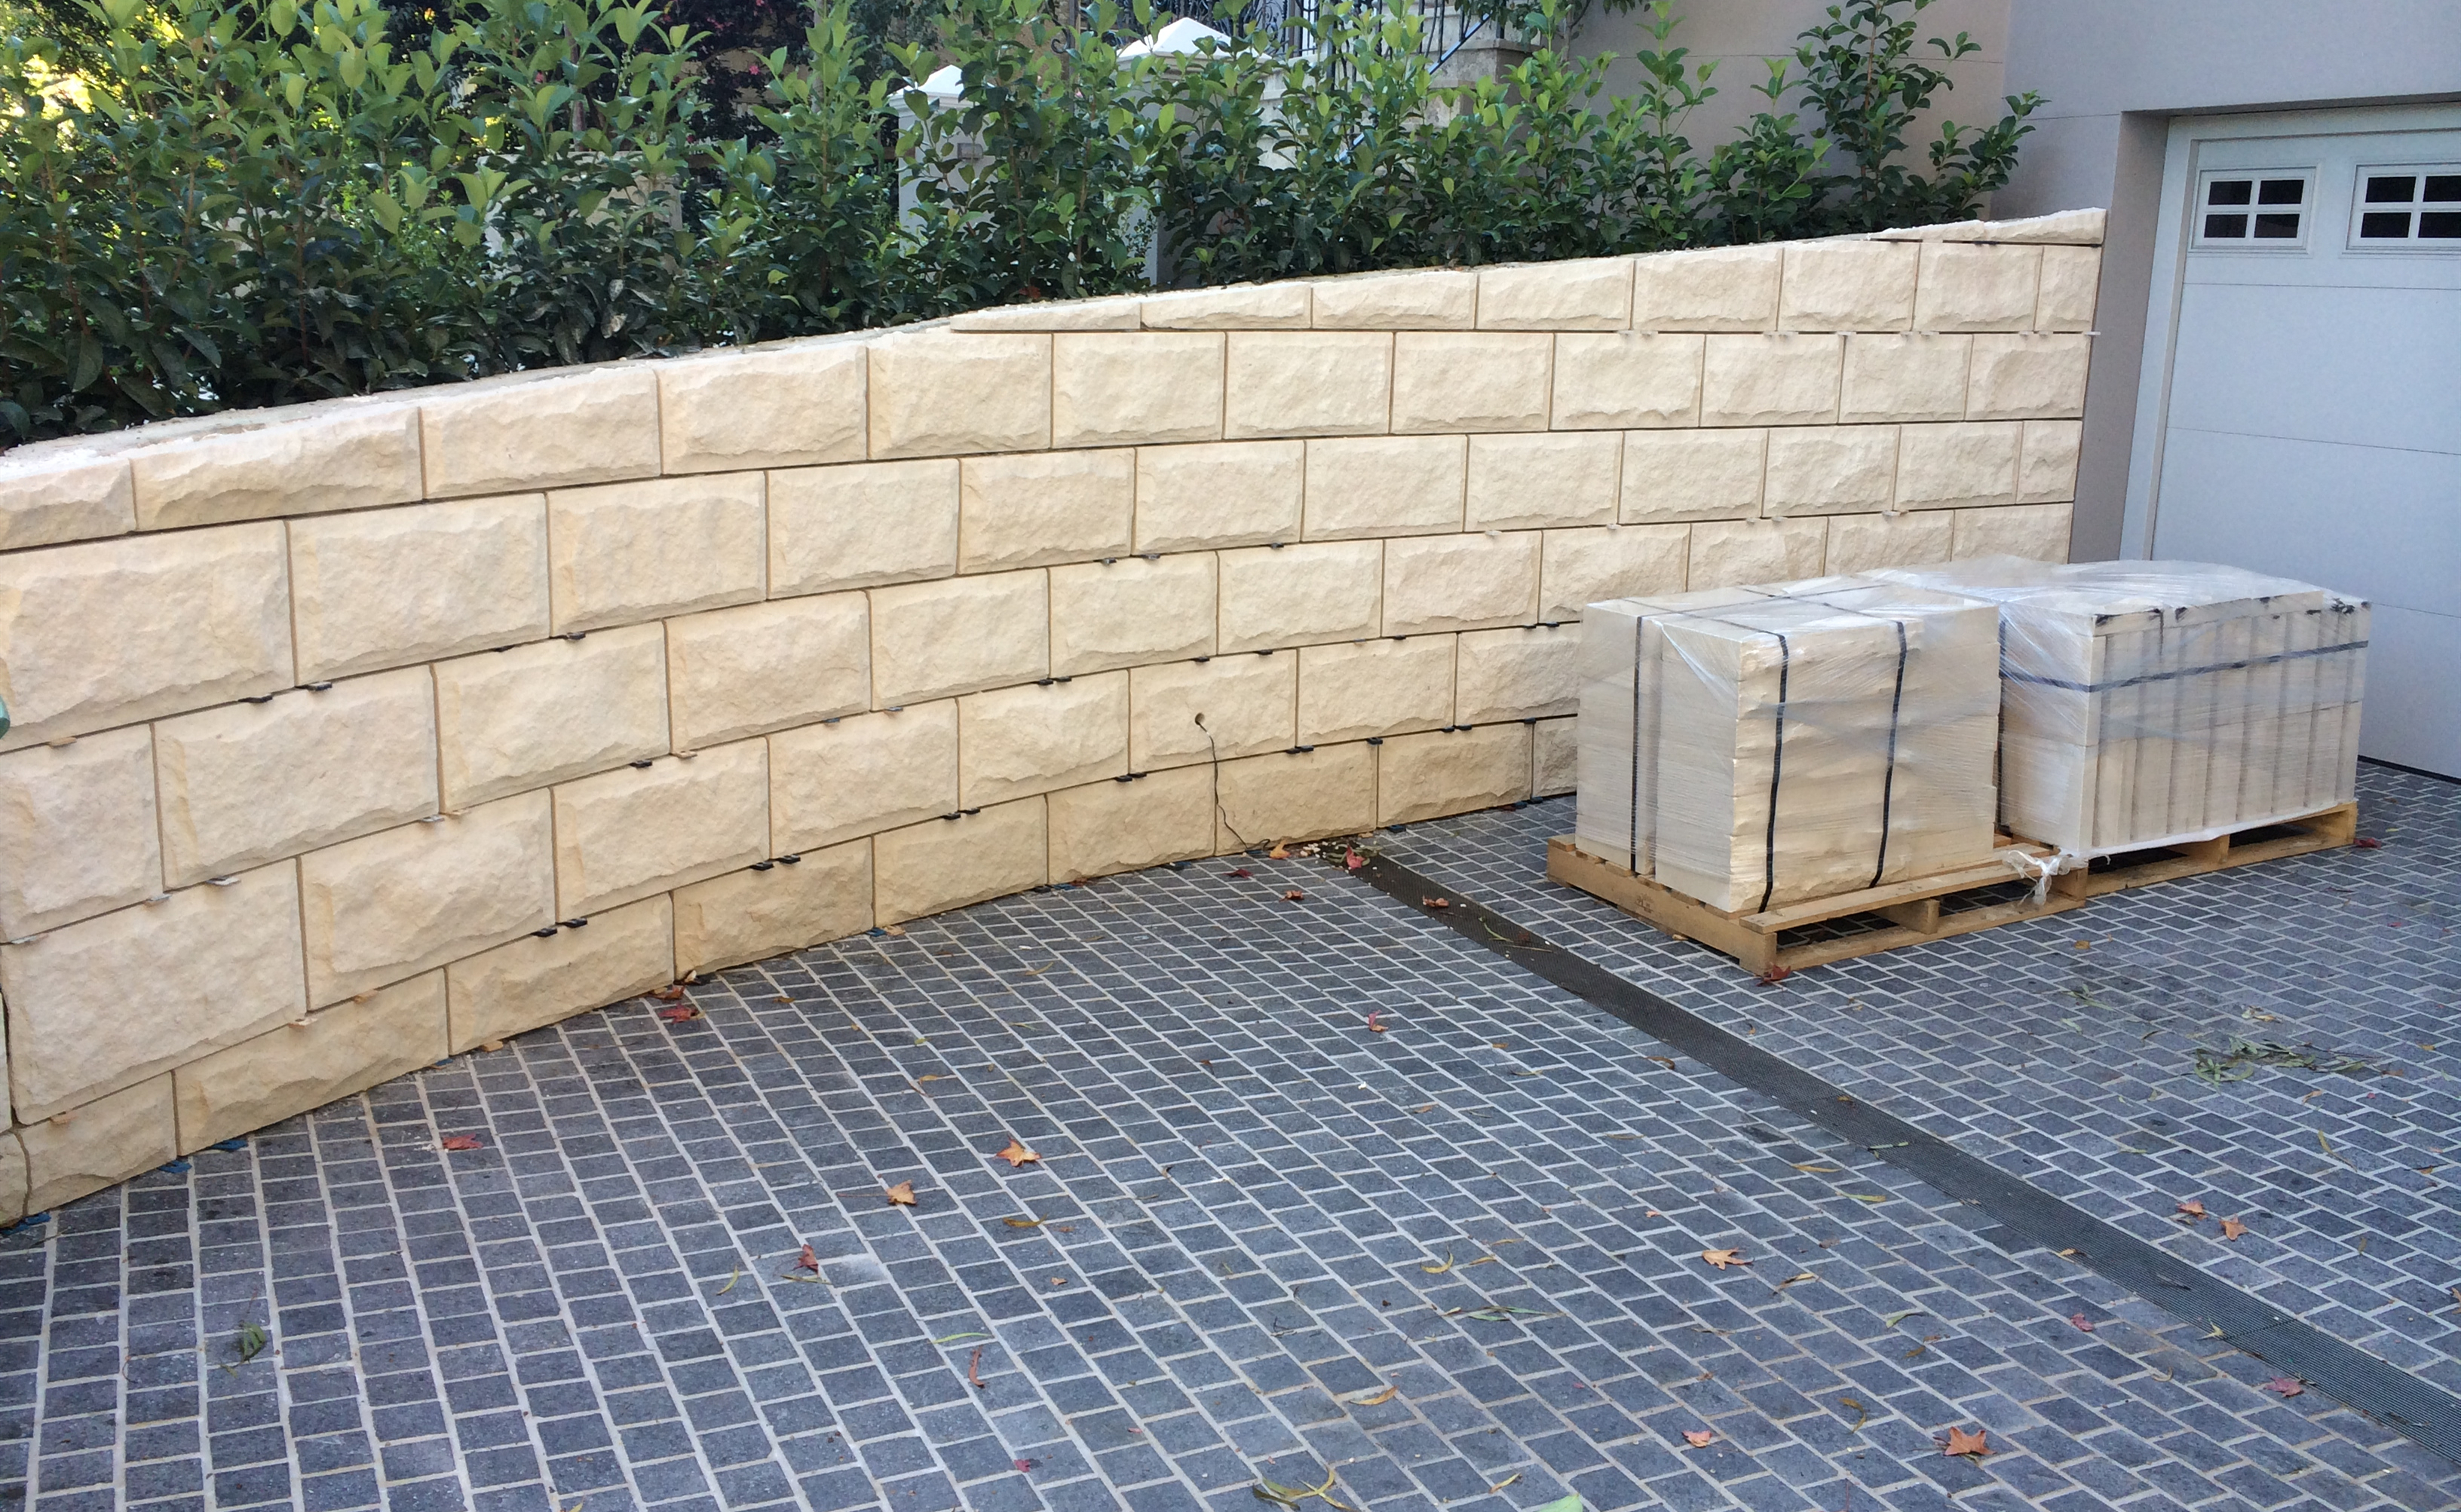 Natural stone Landscaping project of a White rockface sandstone wall with black tumbled granite stone pavers